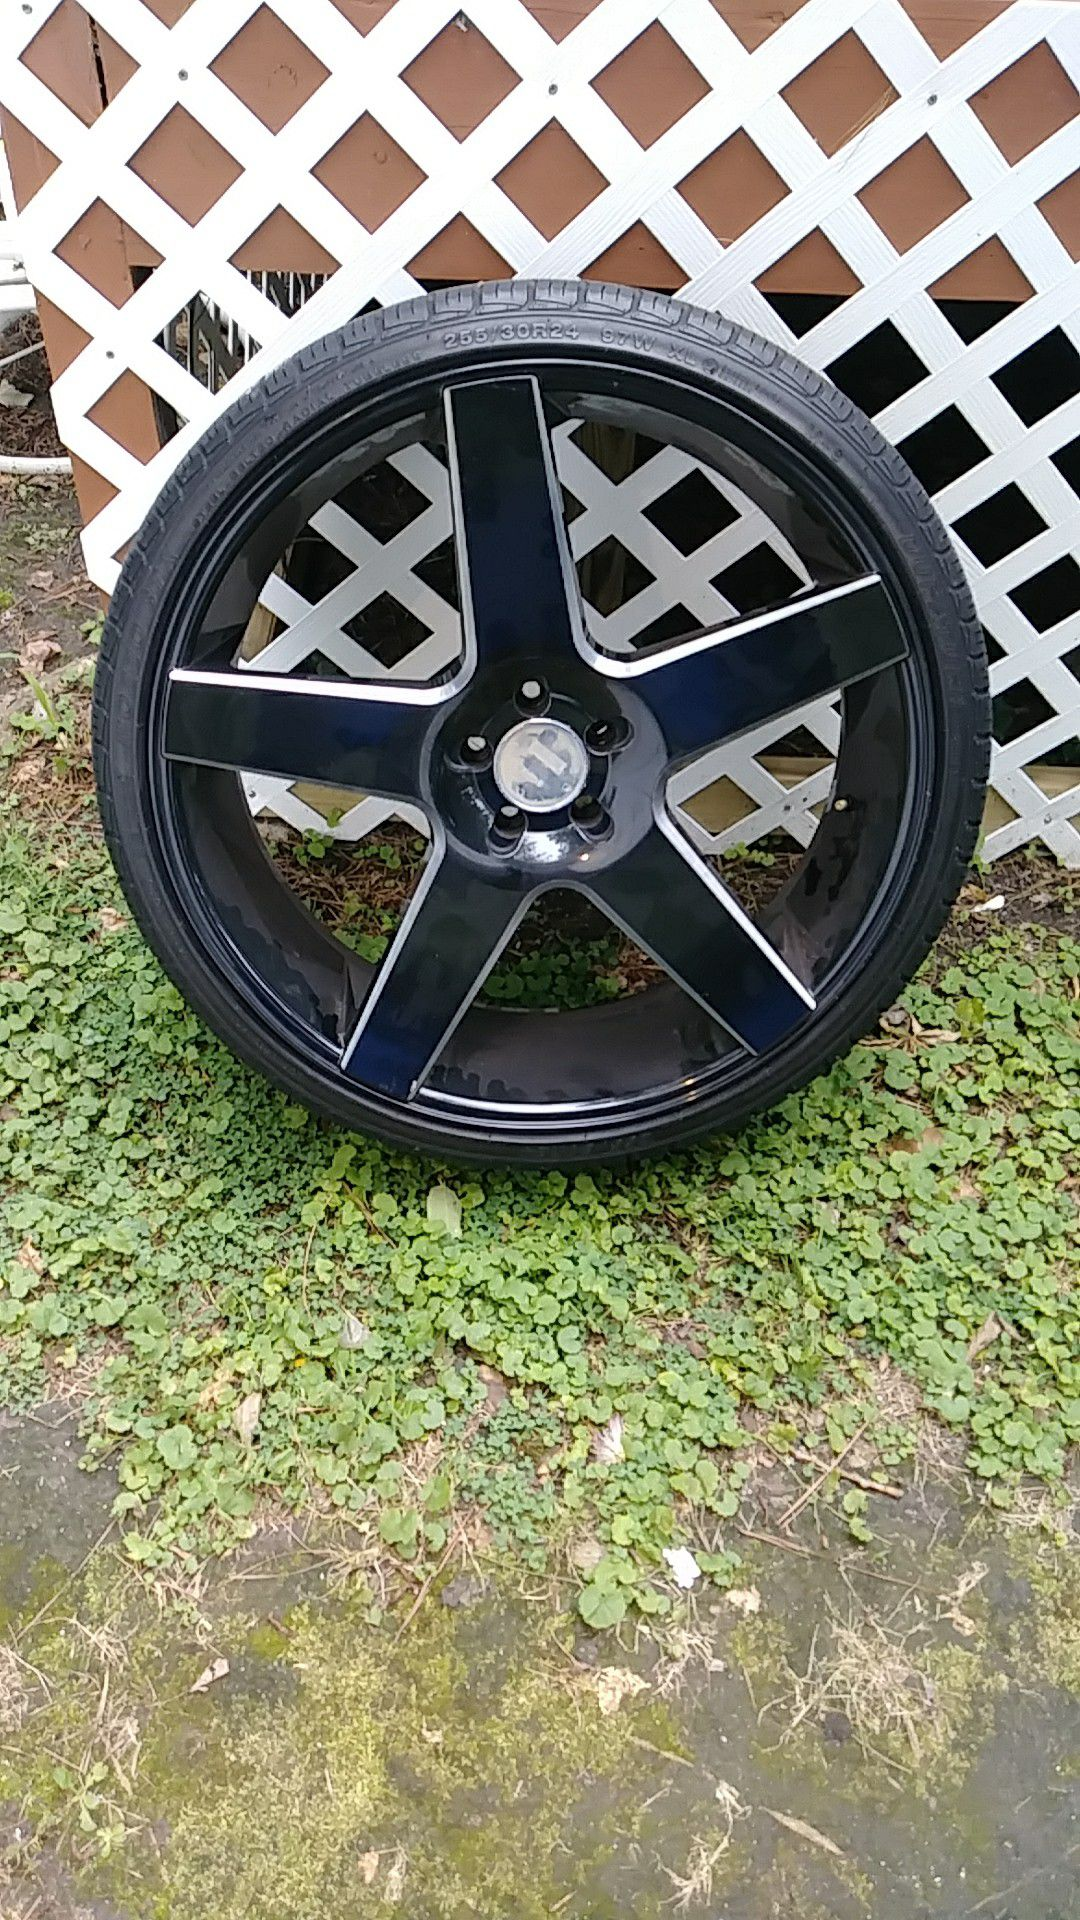 24 inch rims have 3 must get the other1